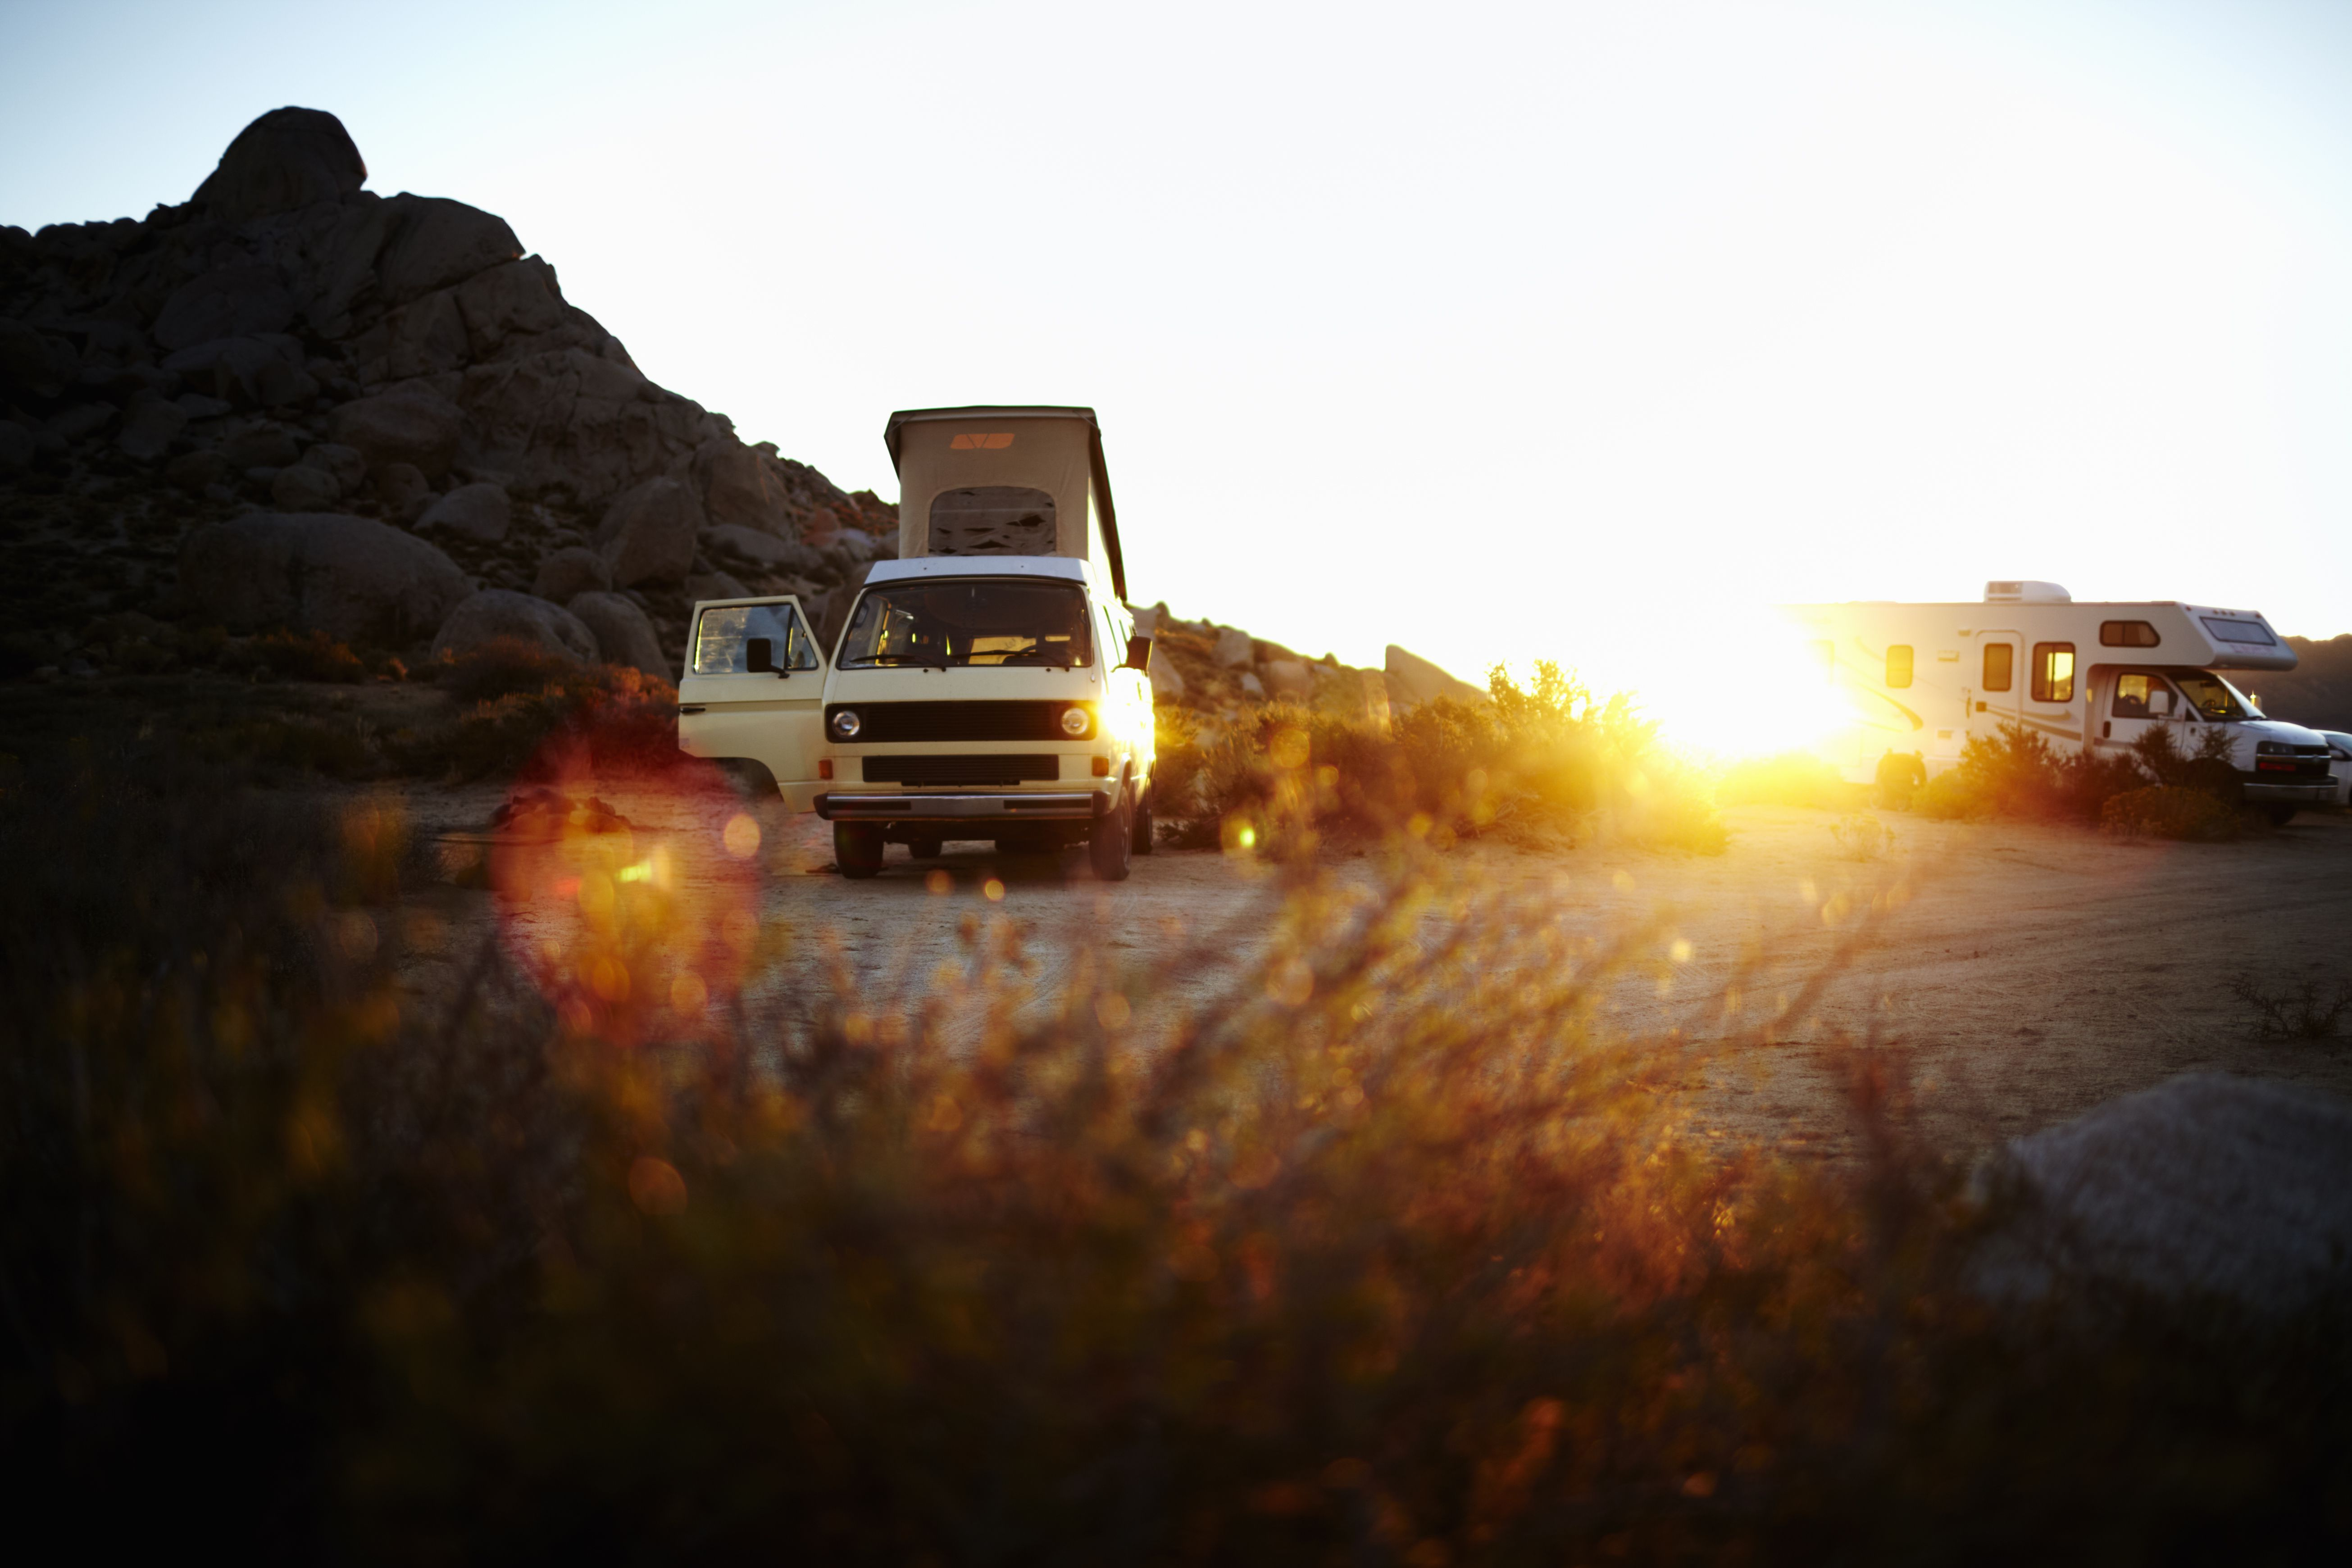 A camper van, a classic design, and an iconic travelling vehicle in Yosemite national park, at sunset.